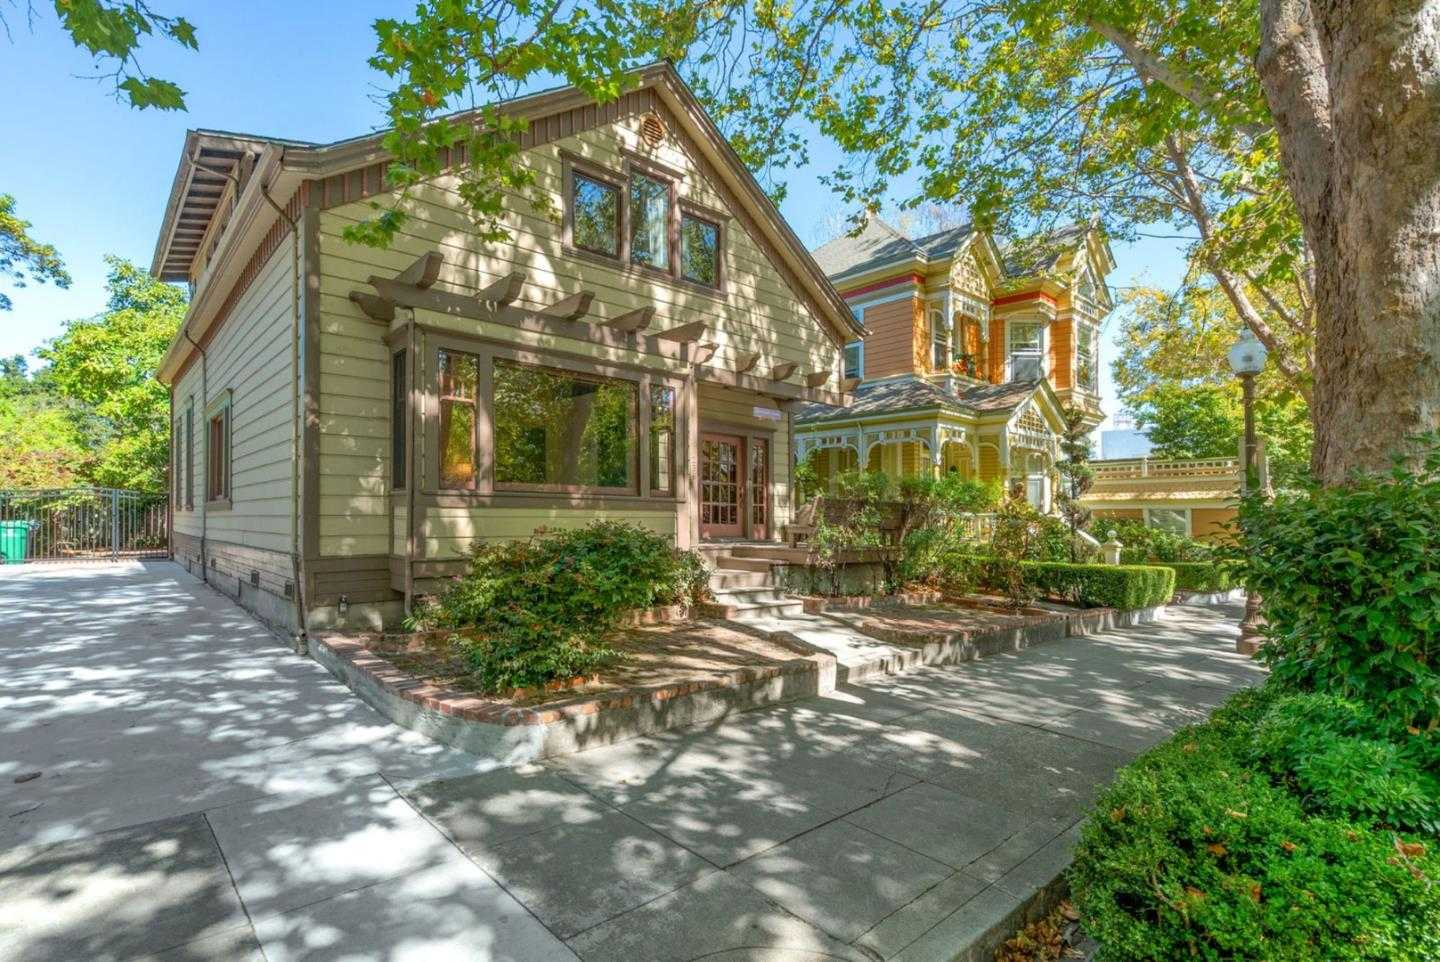 $1,650,000 - 6Br/5Ba -  for Sale in Santa Cruz